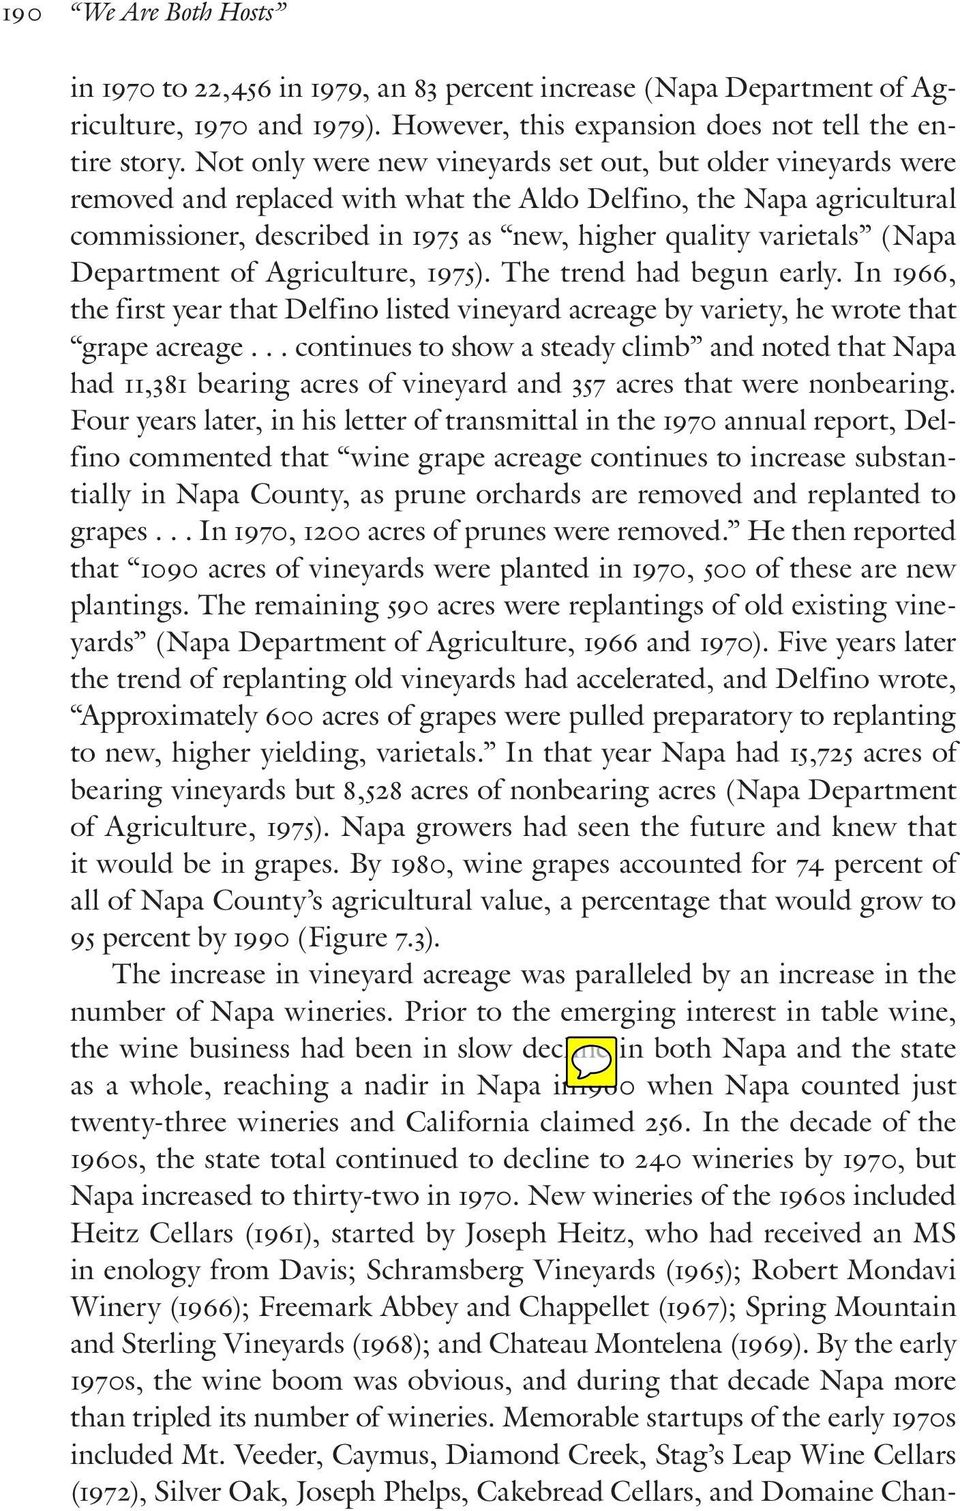 (Napa Department of Agriculture, 1975). The trend had begun early. In 1966, the first year that Delfino listed vineyard acreage by variety, he wrote that grape acreage.